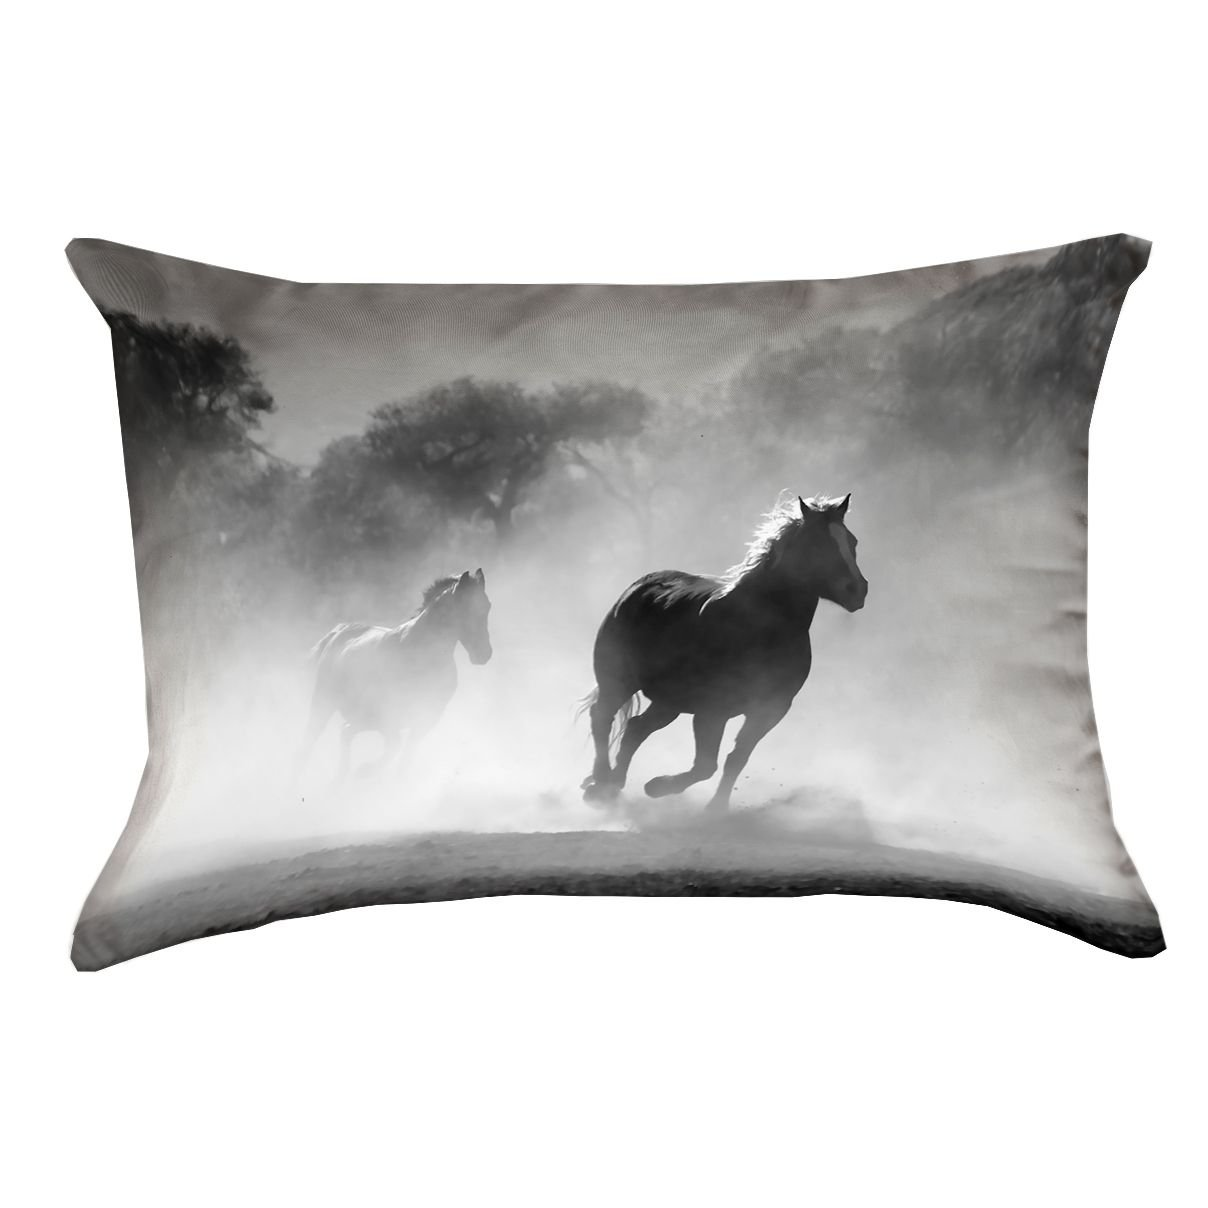 Pillow Cover Only Pillow-Faux Suede Double Sided Print with Concealed Zipper ArtVerse Bhakti Iyata Galloping Horses x 26 x26